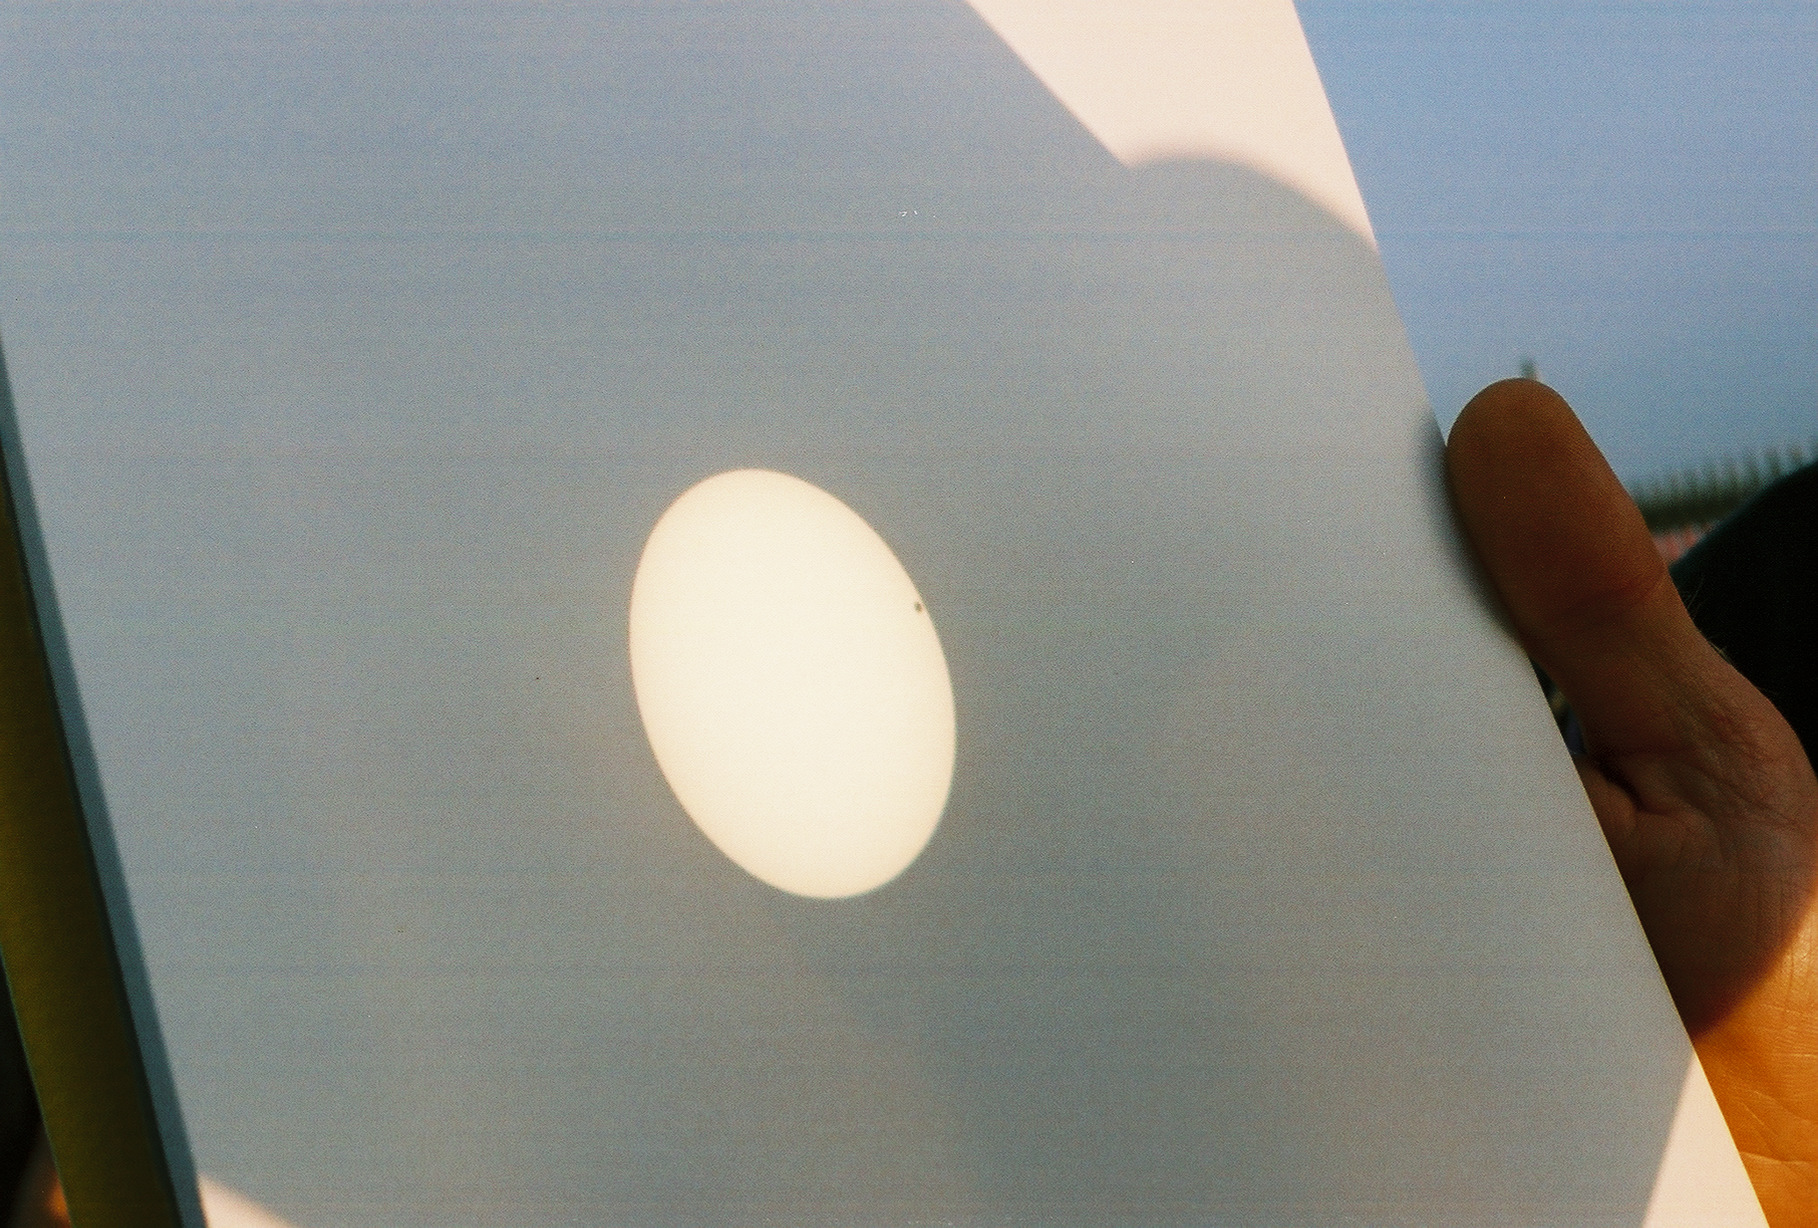 Transit of Venus image, projected on a white card